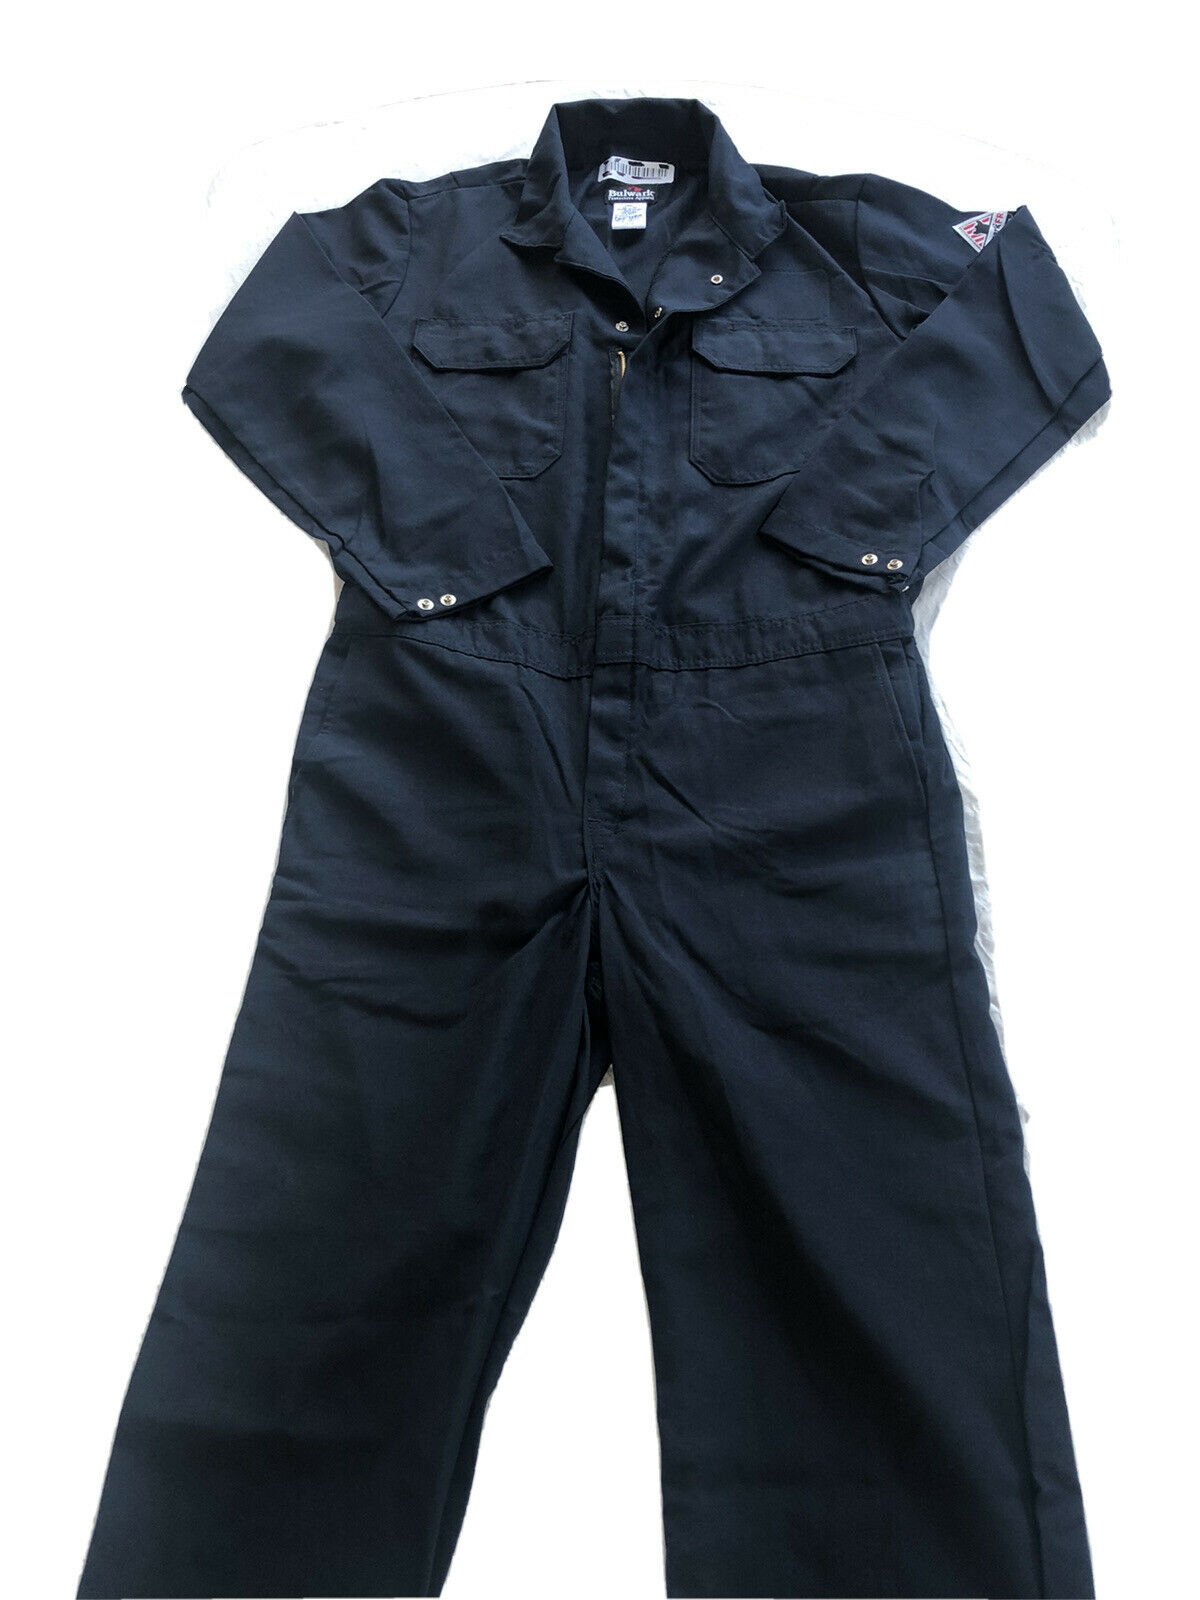 Bulwark Men S Navy Premium Nomex Iiia Coveralls Cnb6nv 52 Reg For Sale Online Ebay